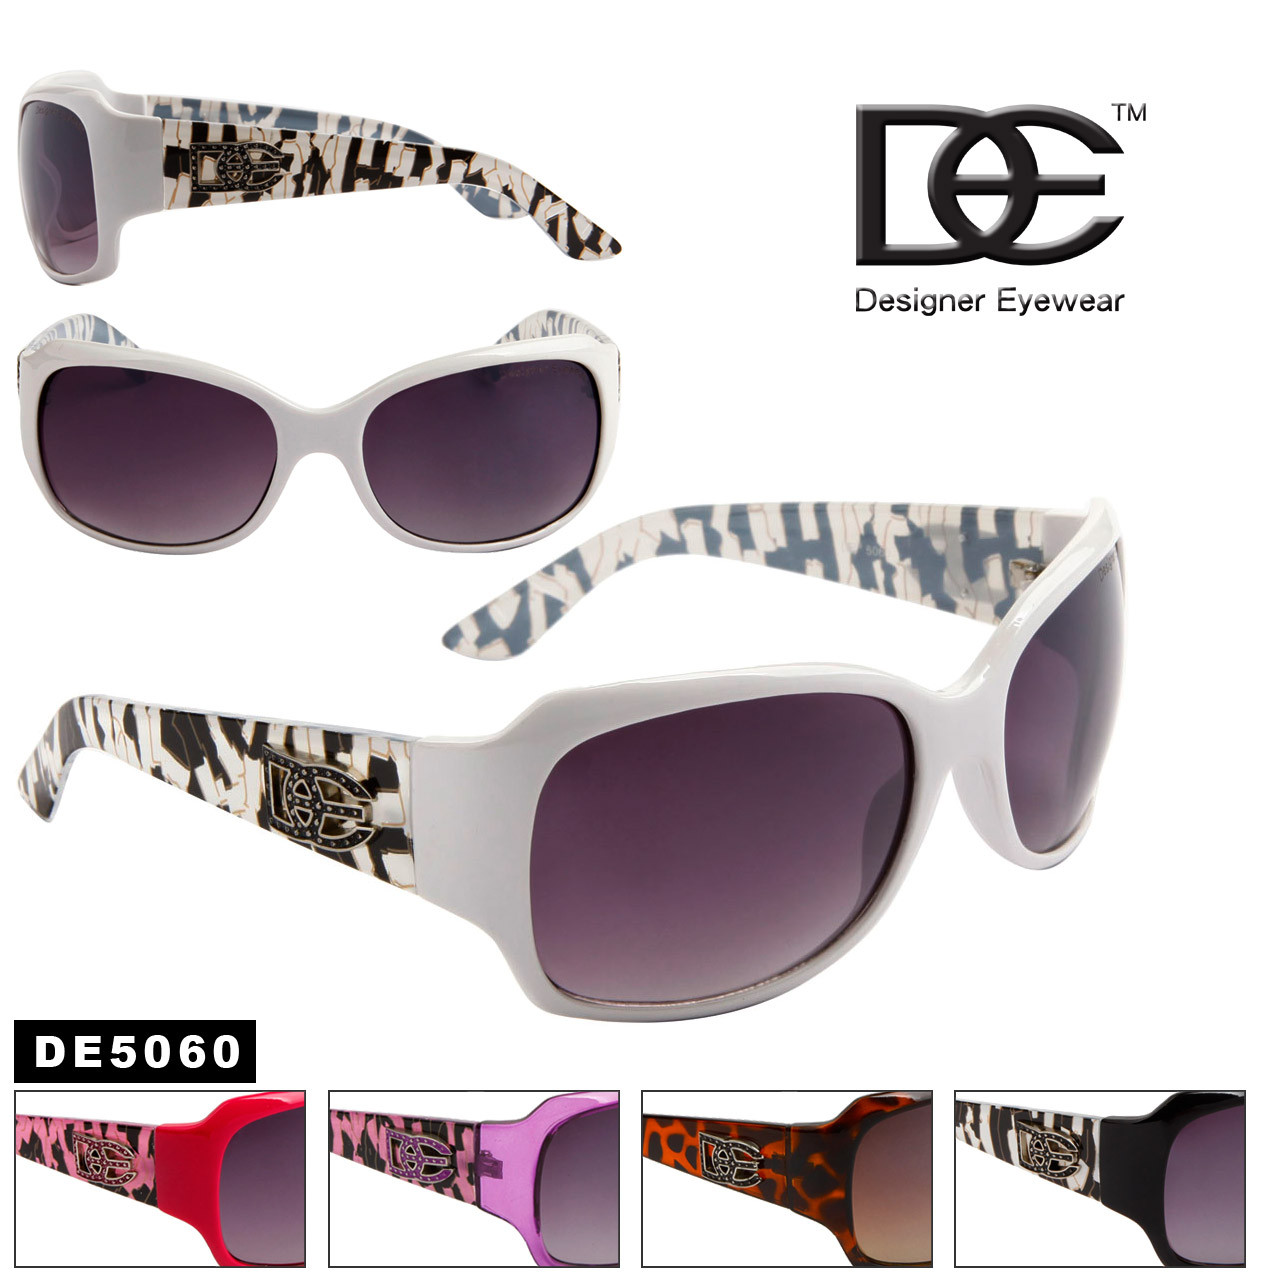 Wholesale DE™ Designer Sunglasses - Style # DE5060 (Assorted Colors) (12 pcs.)